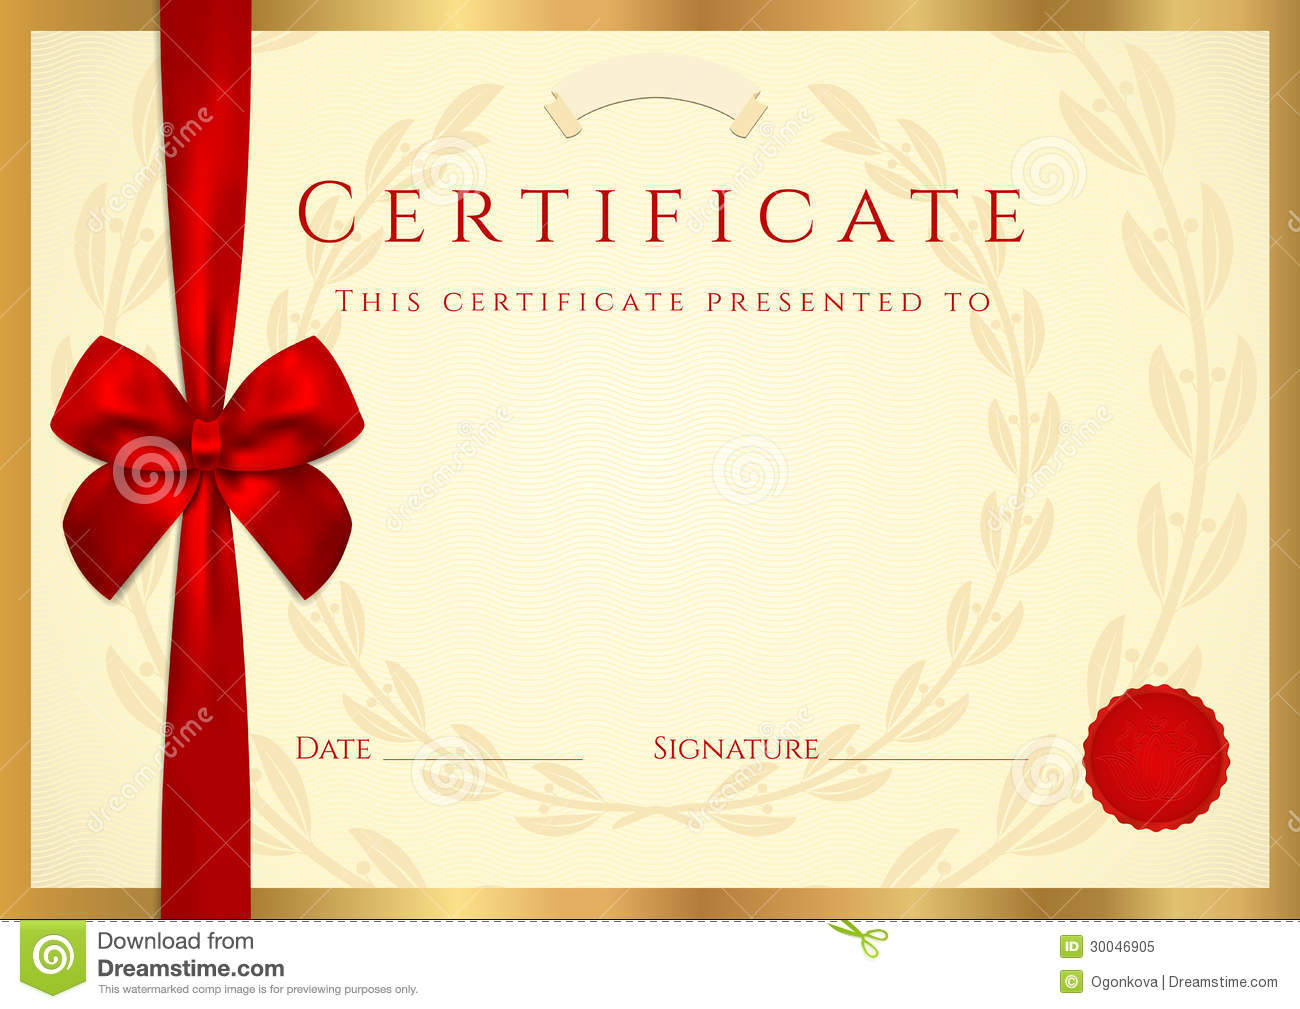 Certificate diploma Template With Red Bow Royalty Free – Certificate Layout